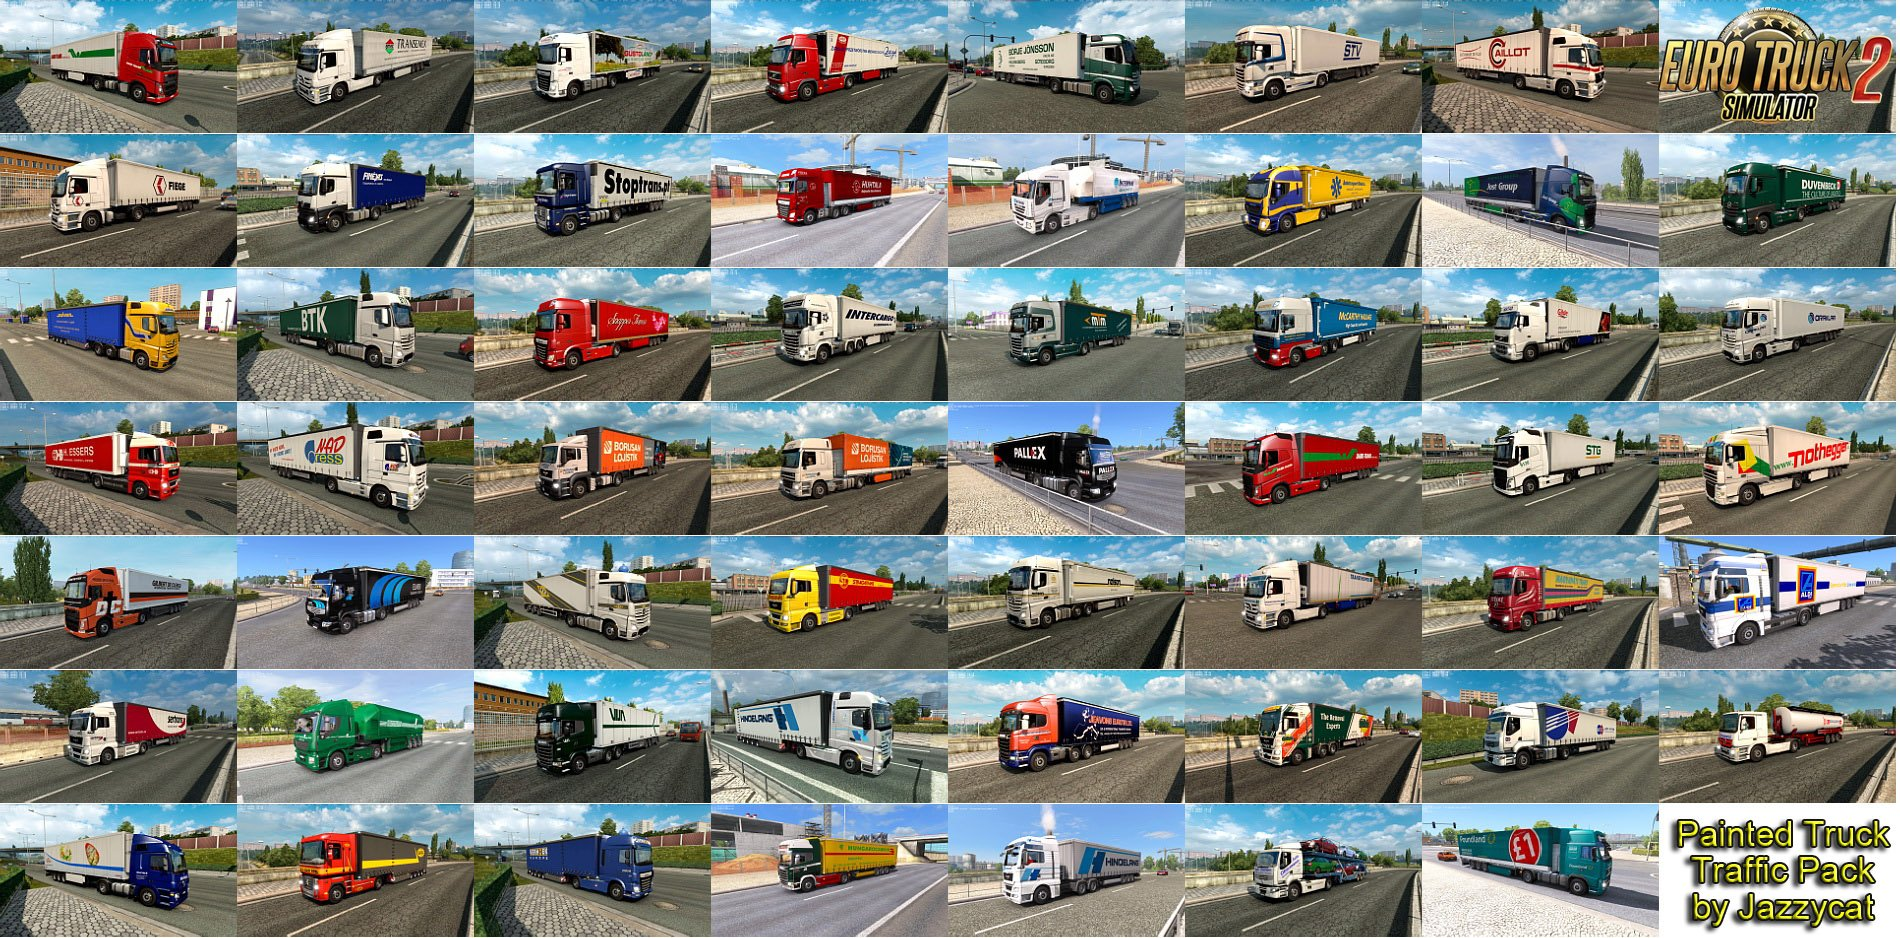 Painted Truck Traffic Pack v7.5 by Jazzycat